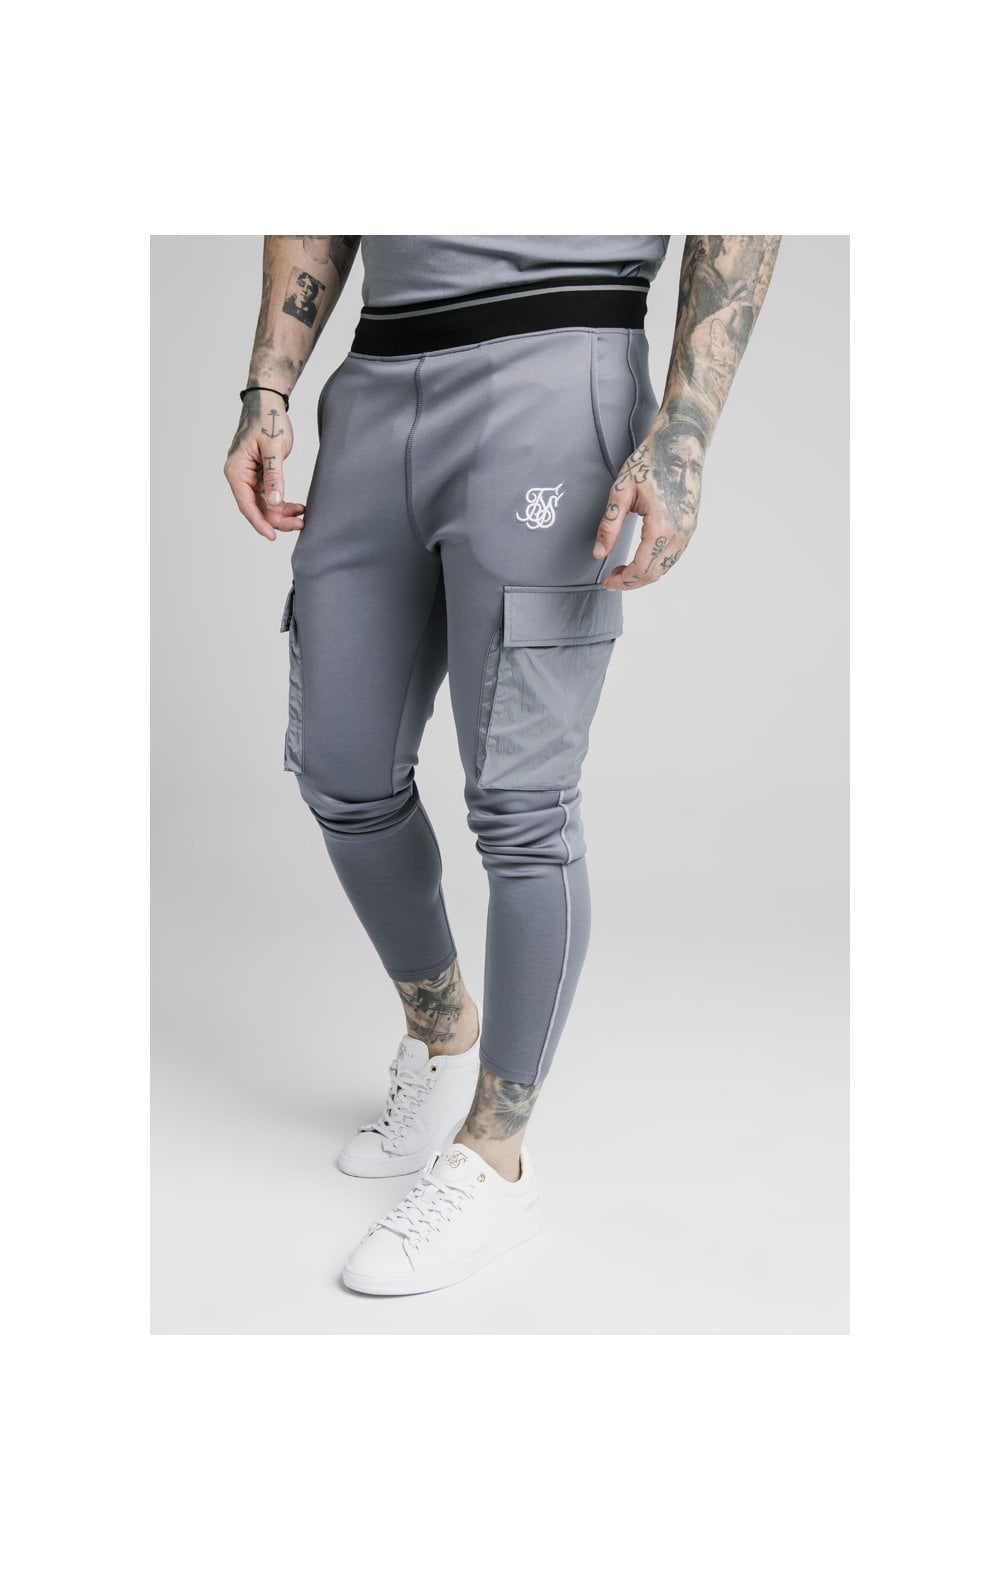 SikSilk Adapt Crushed Nylon Cargo Pant - Blue Slate